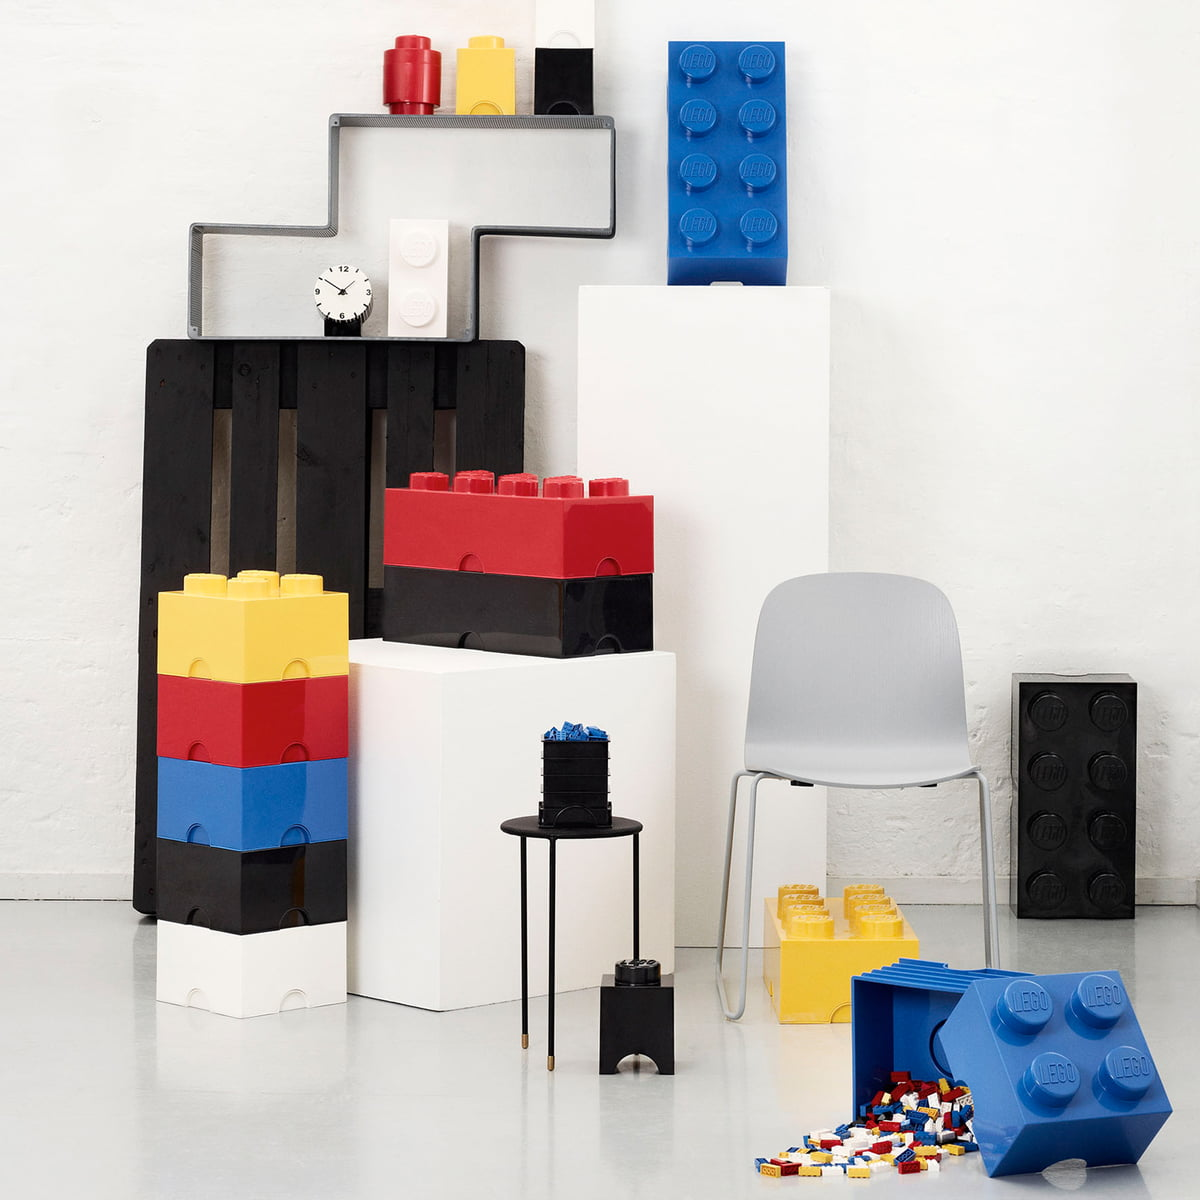 Storage Brick 8 by Lego in the home design shop